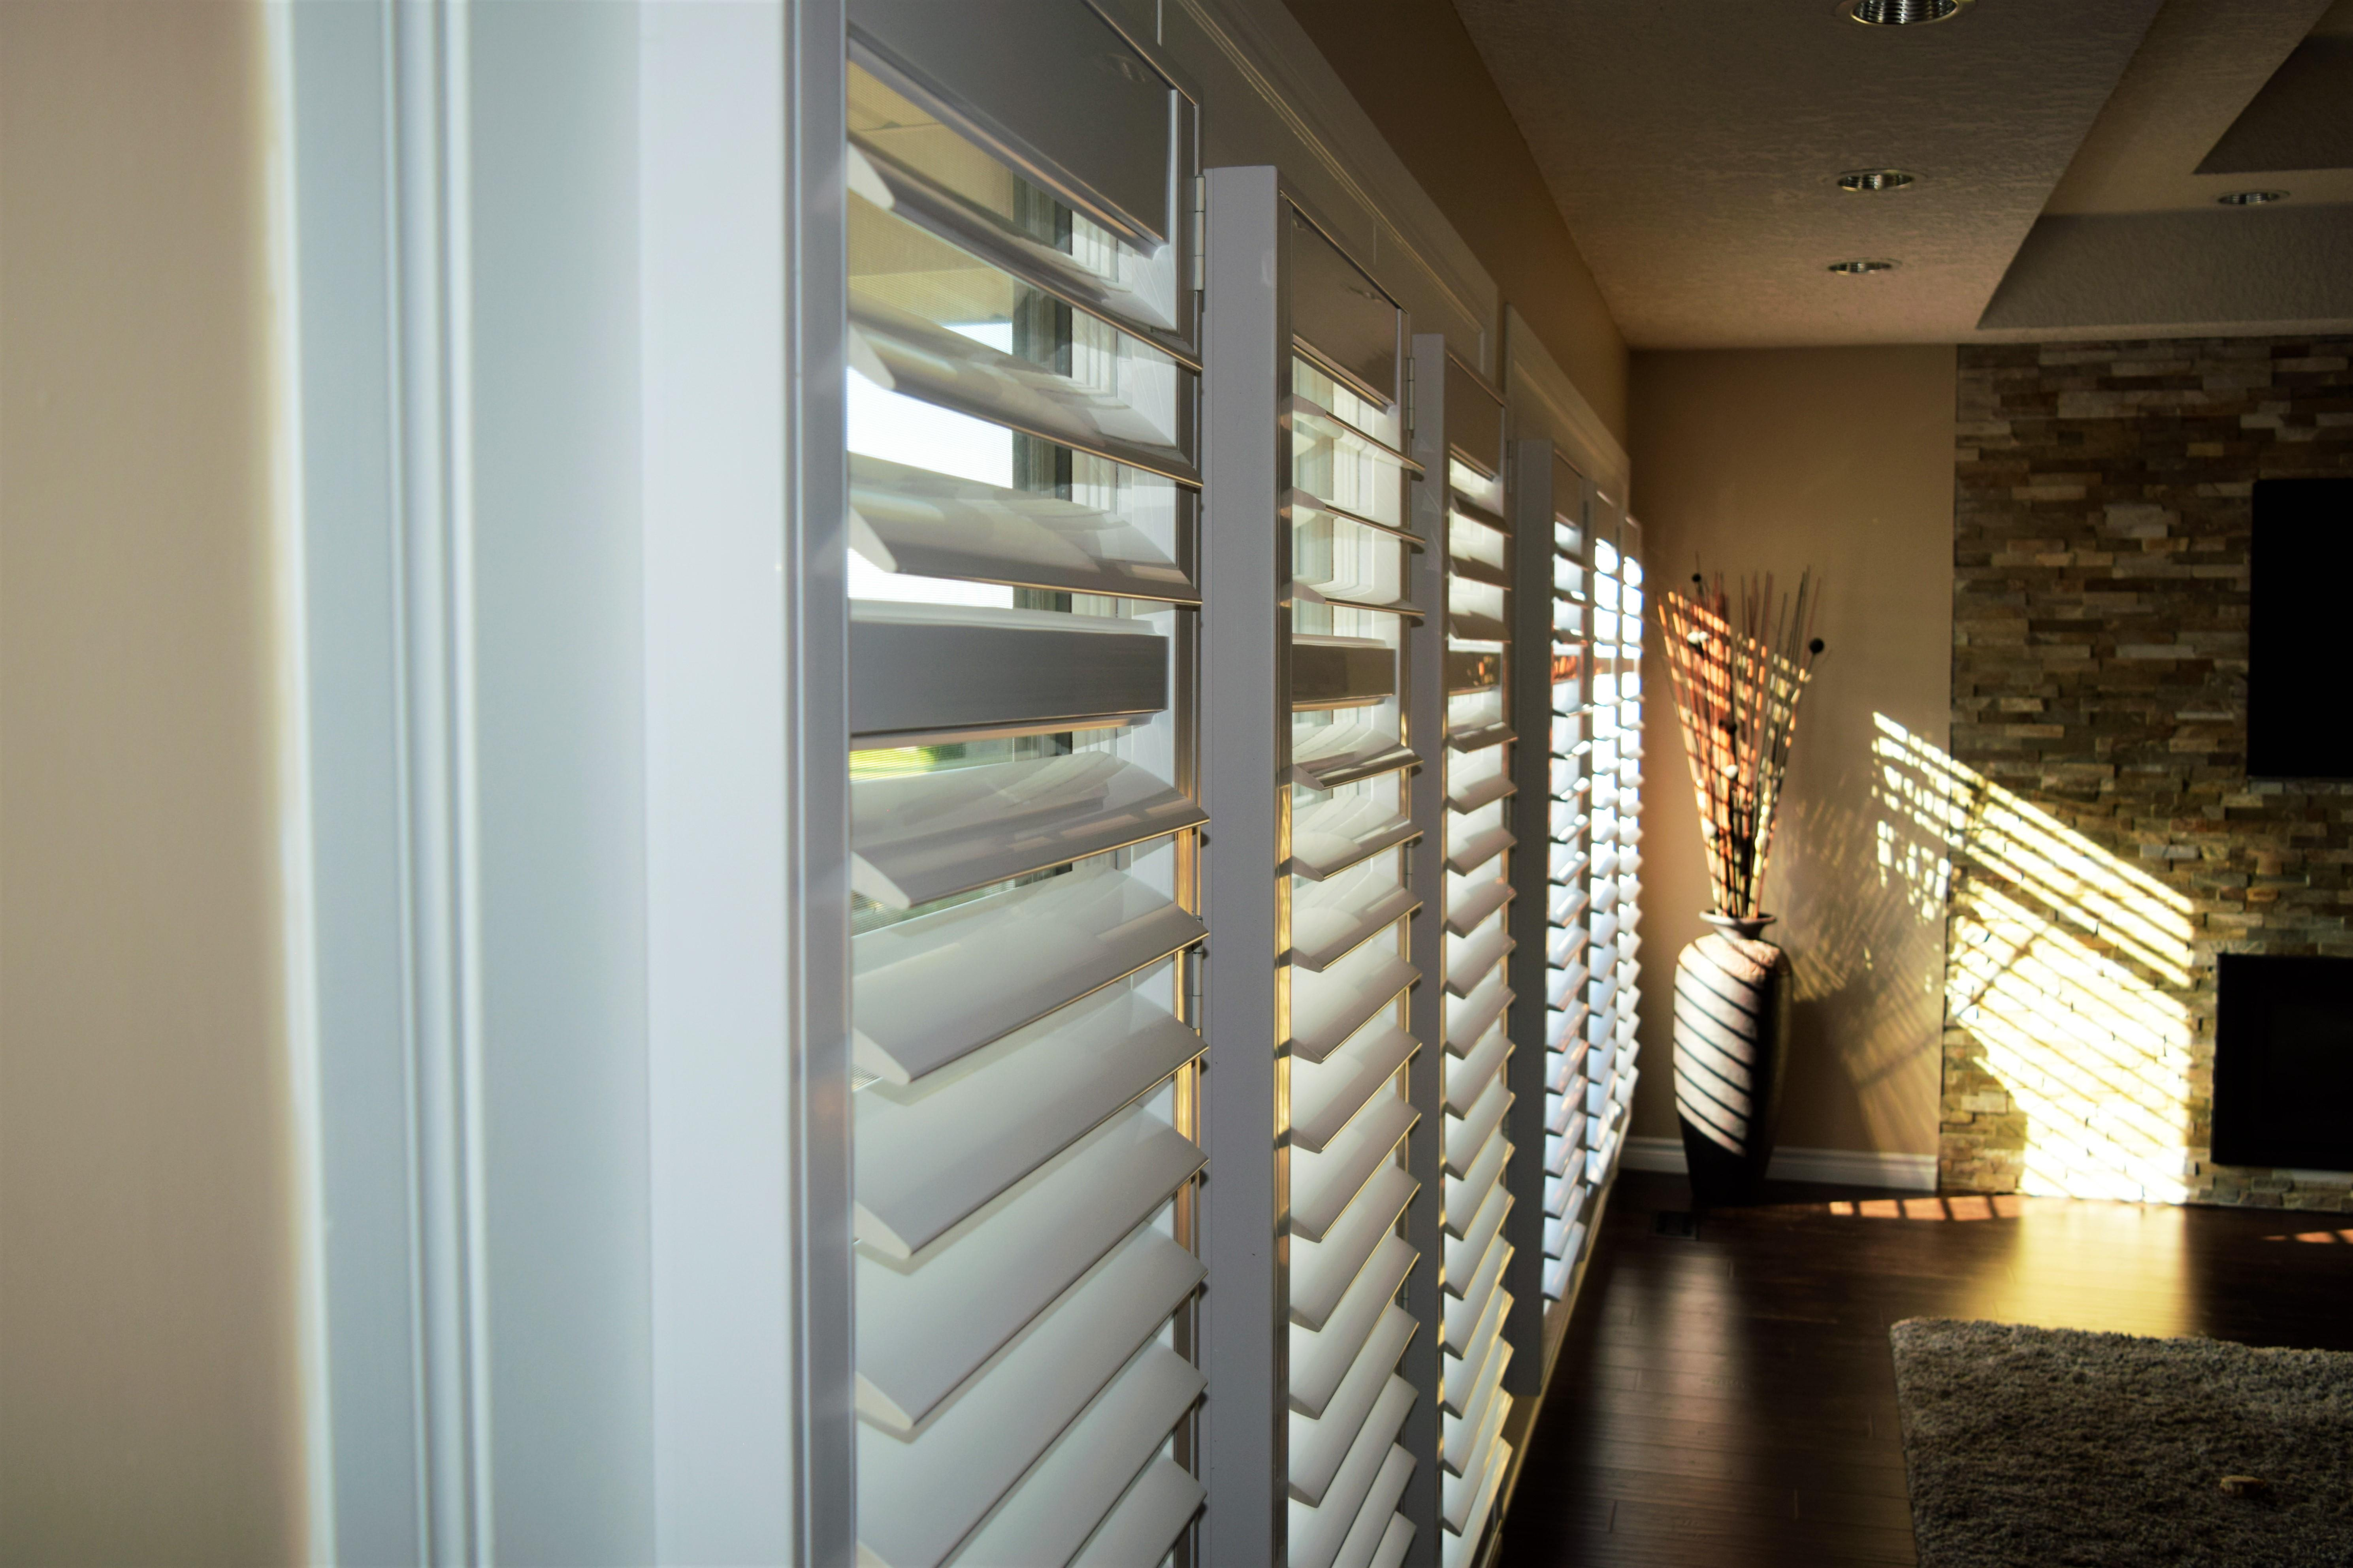 Budget Blinds à Waterloo: One of our favourite solutions for doors is to use a framed California shutters. Shutters are one of the few options that don't rattle and clang as the doors swing open and closed. You can see in this image how you can control and play with how the light enters the room. Conestogo.